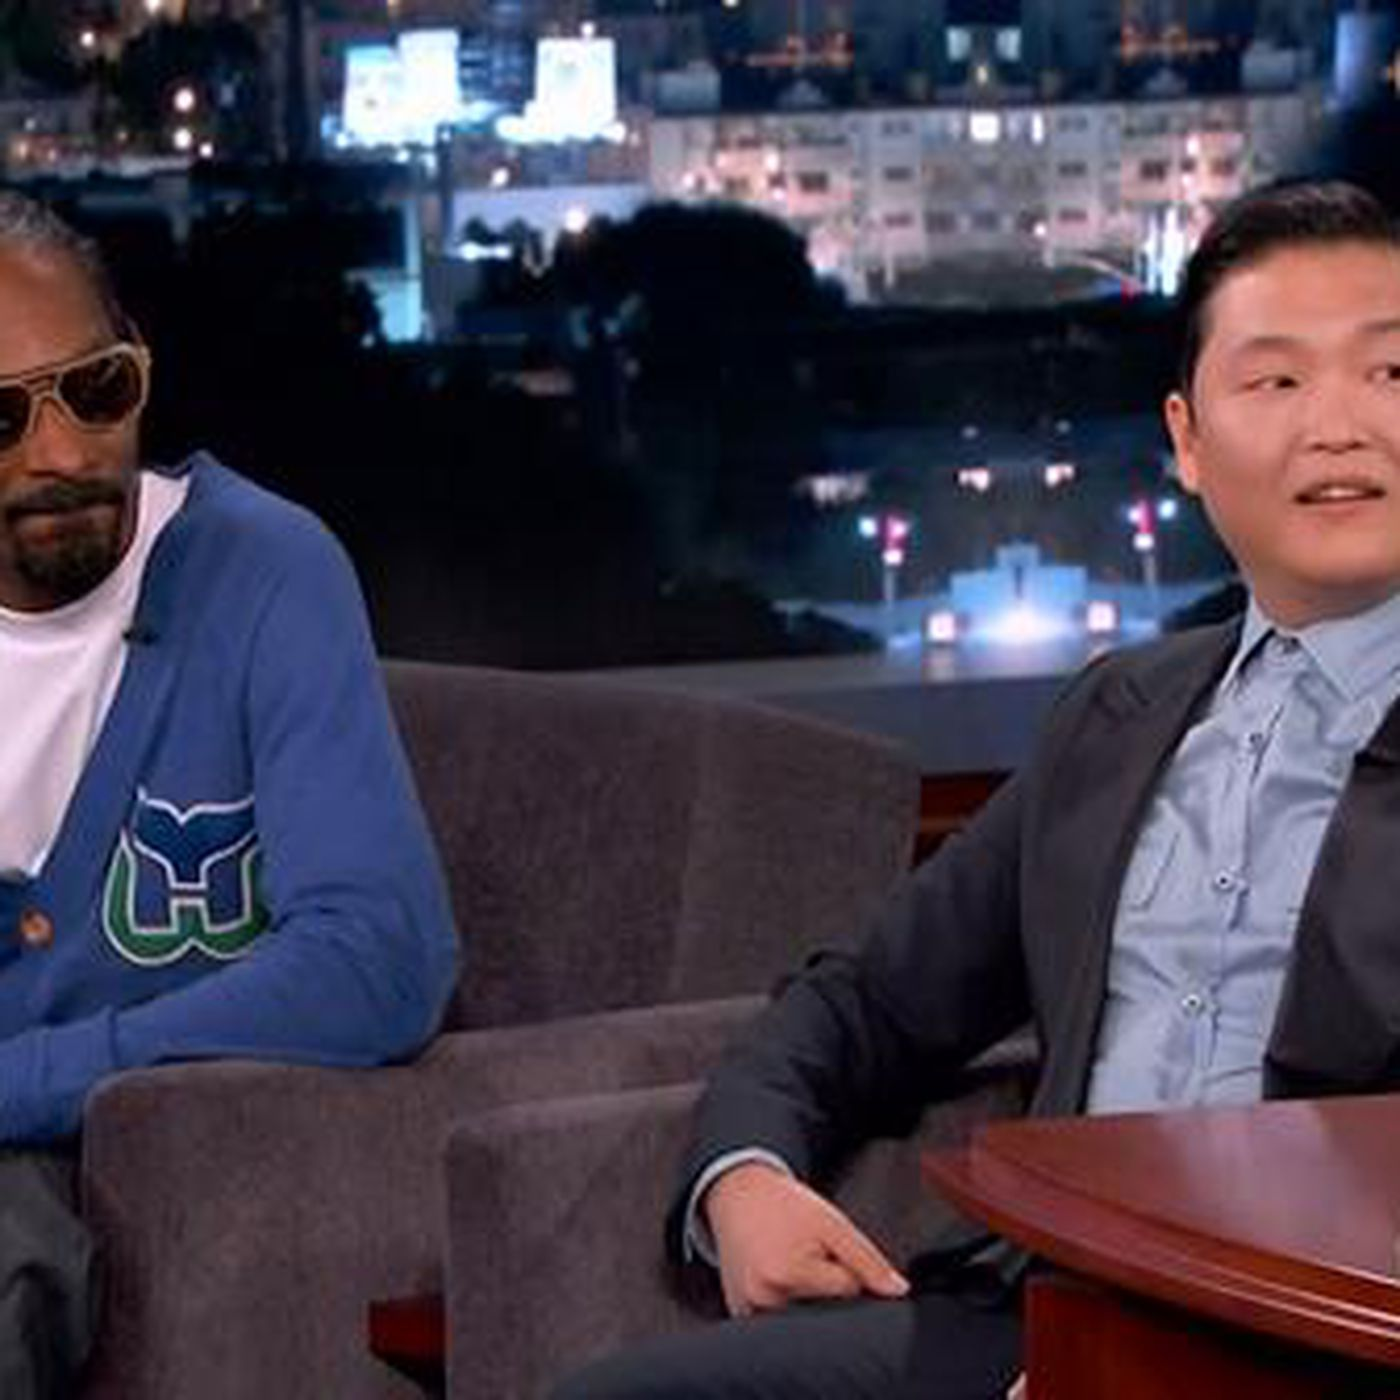 big sale dfc42 d9740 Watch Snoop Dogg (in a Hartford Whalers sweater) rap with ...